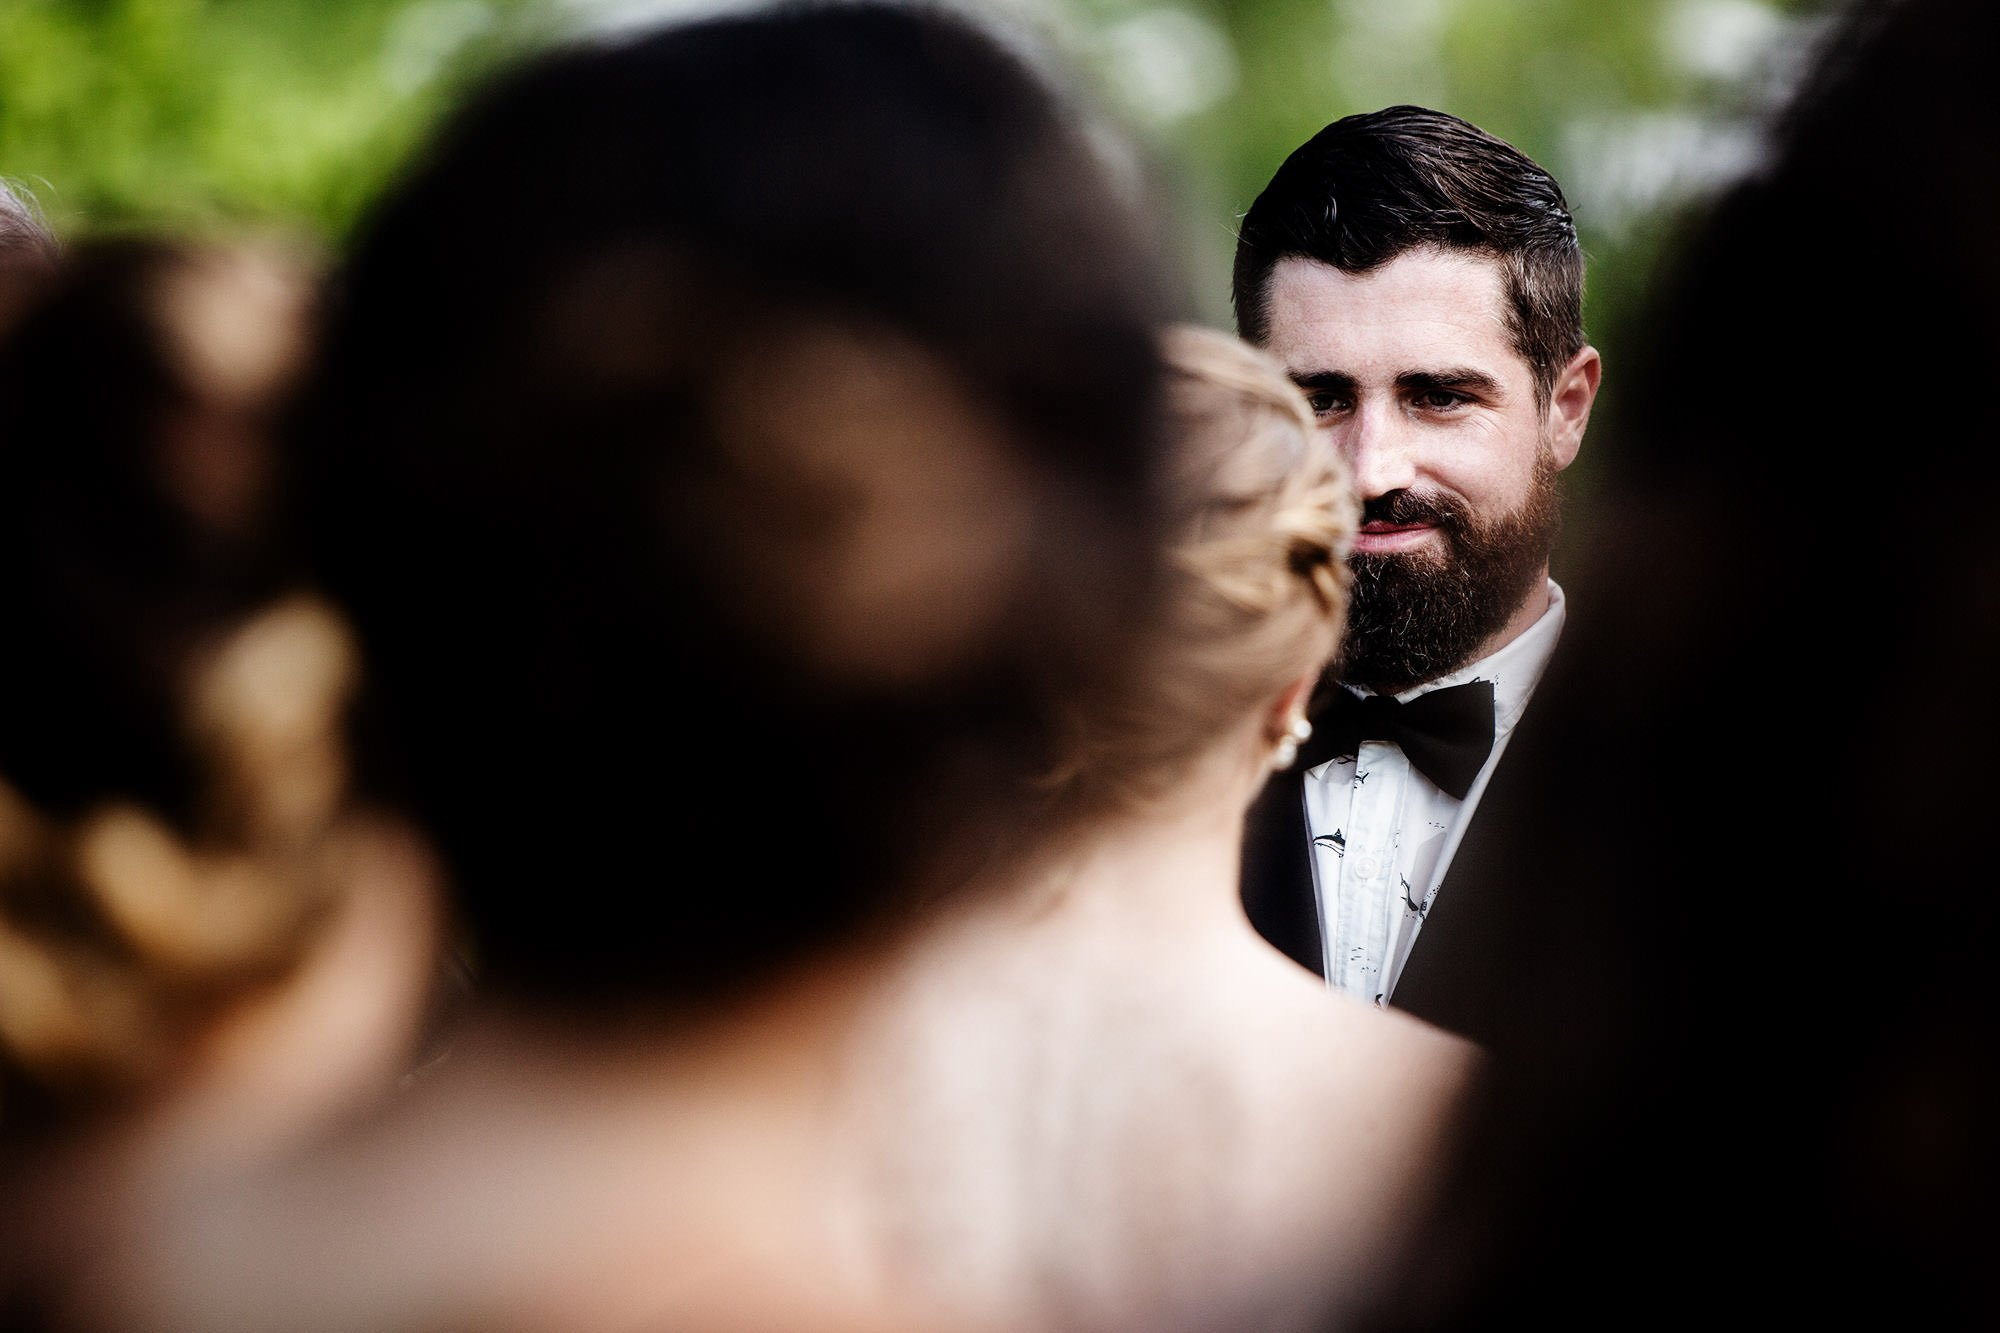 The groom looks at his bride during the wedding ceremony at Mount Hope Farm.